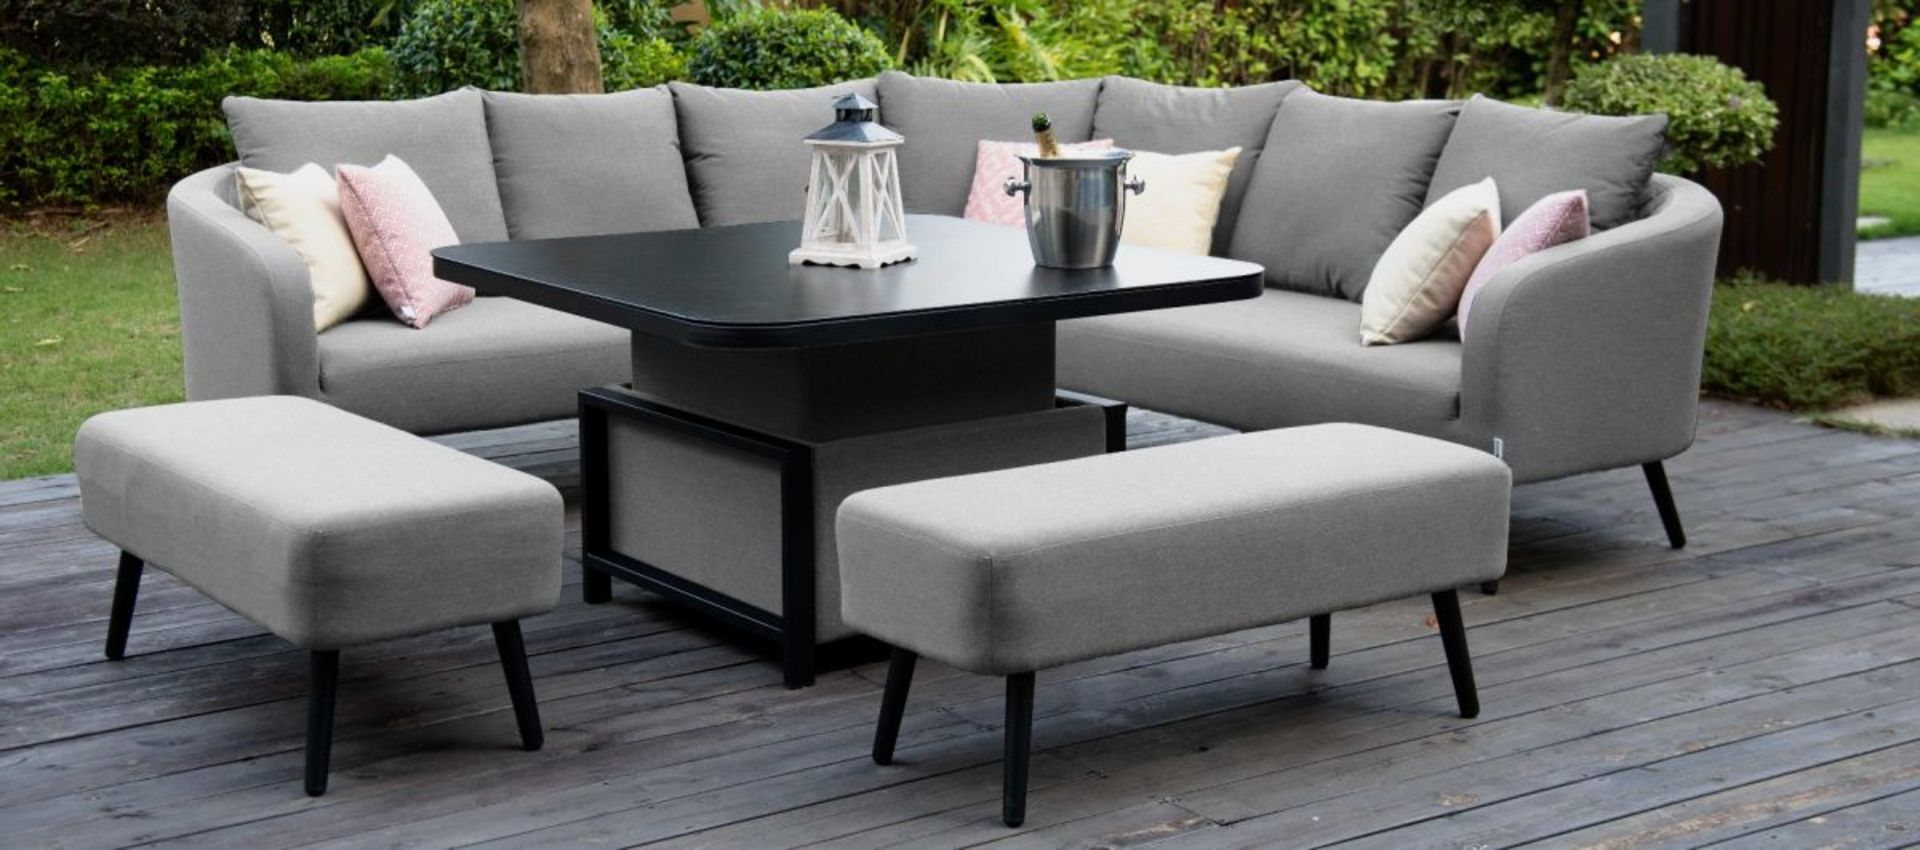 Lot 48 - Ambition Outdoor Square Dining Set With Rising Table (Flanelle) *BRAND NEW*